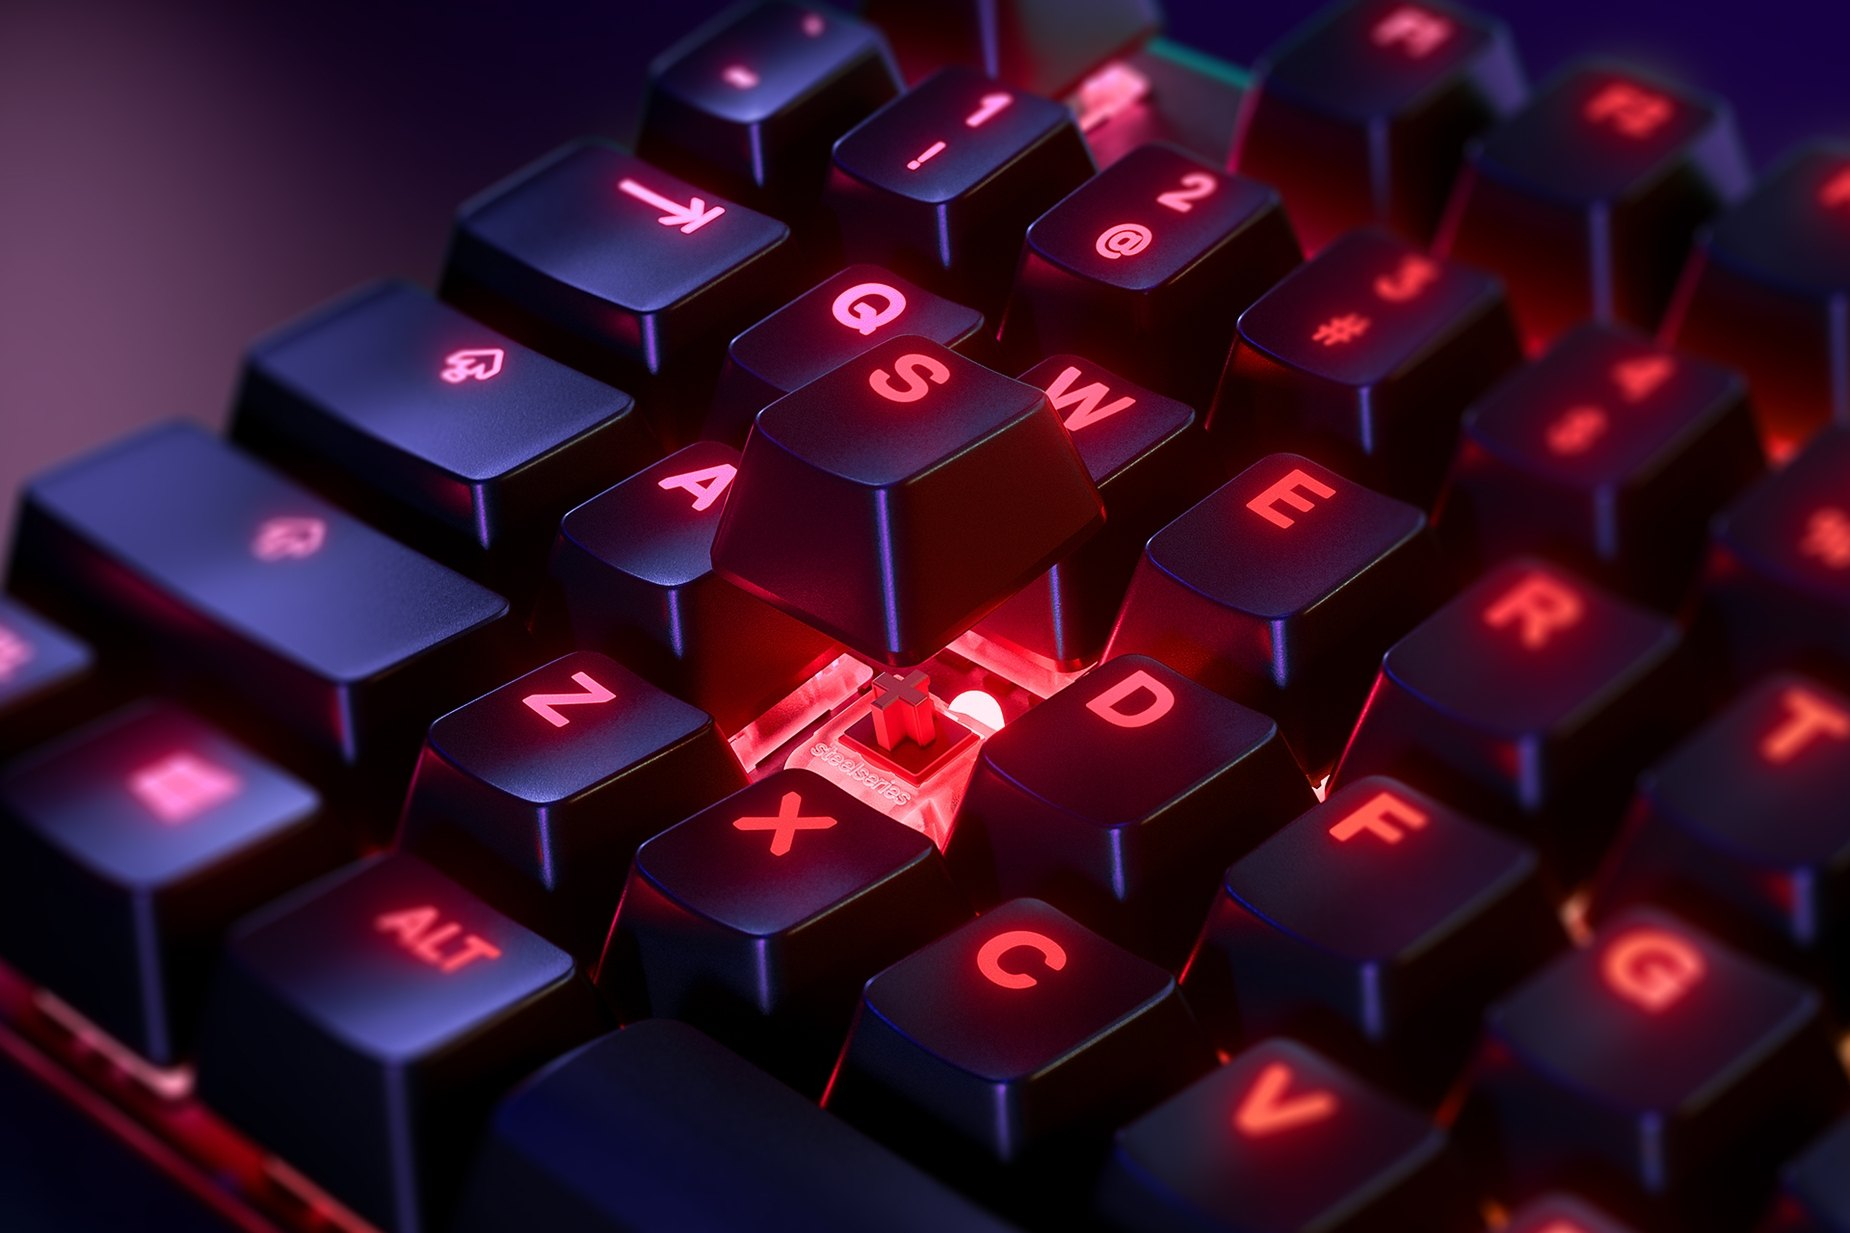 Zoomed in view of a single key on the UK English-Apex 7 (Red Switch) gaming keyboard, the key is raised up to show the SteelSeries QX2 Mechanical RGB Switch underneath